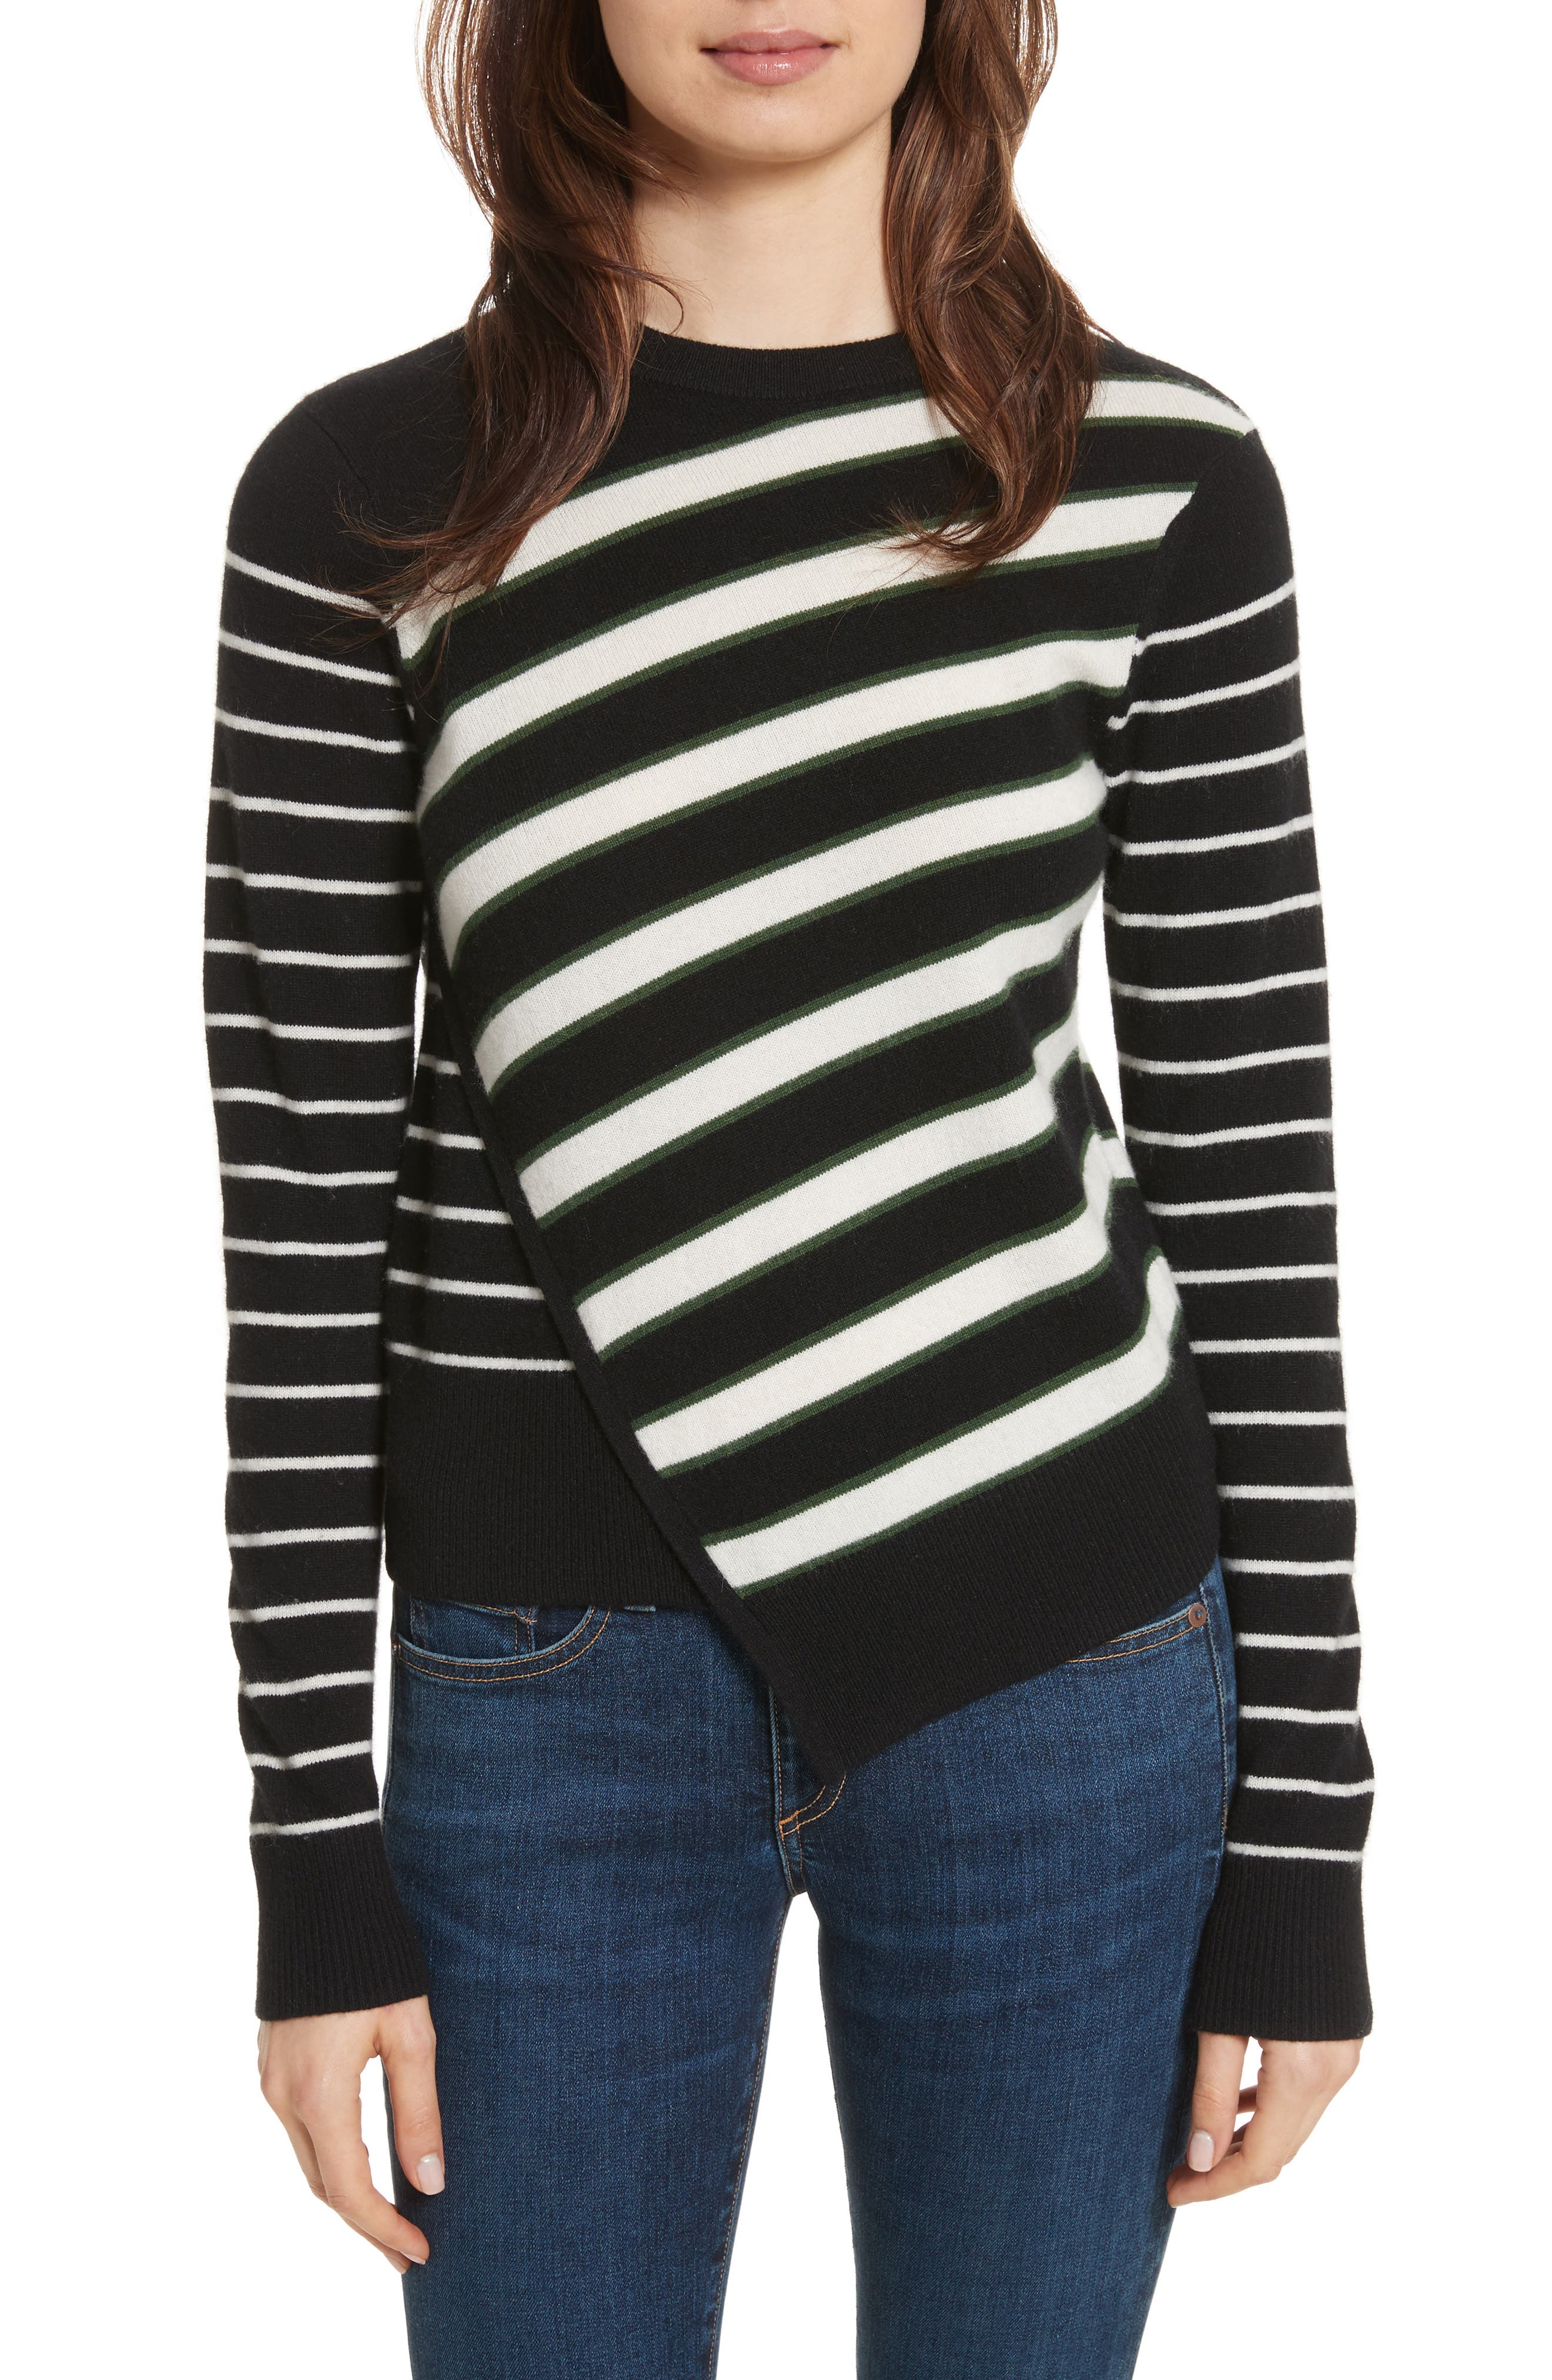 Pepper Cashmere Sweater,                             Main thumbnail 1, color,                             007